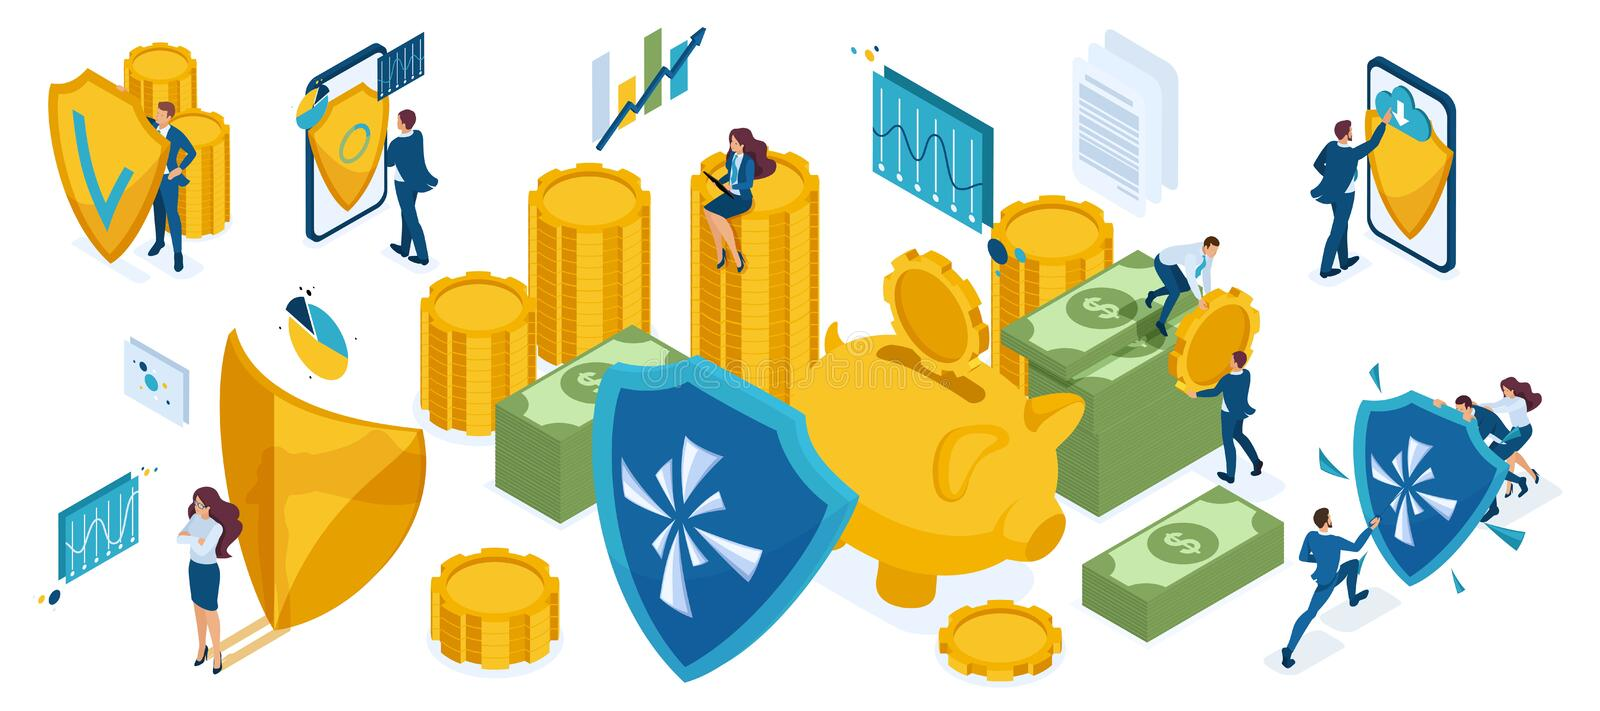 Isometric icon set for the protection of money and valuables, investors, bankers, businessmen and businesswoman stock illustration